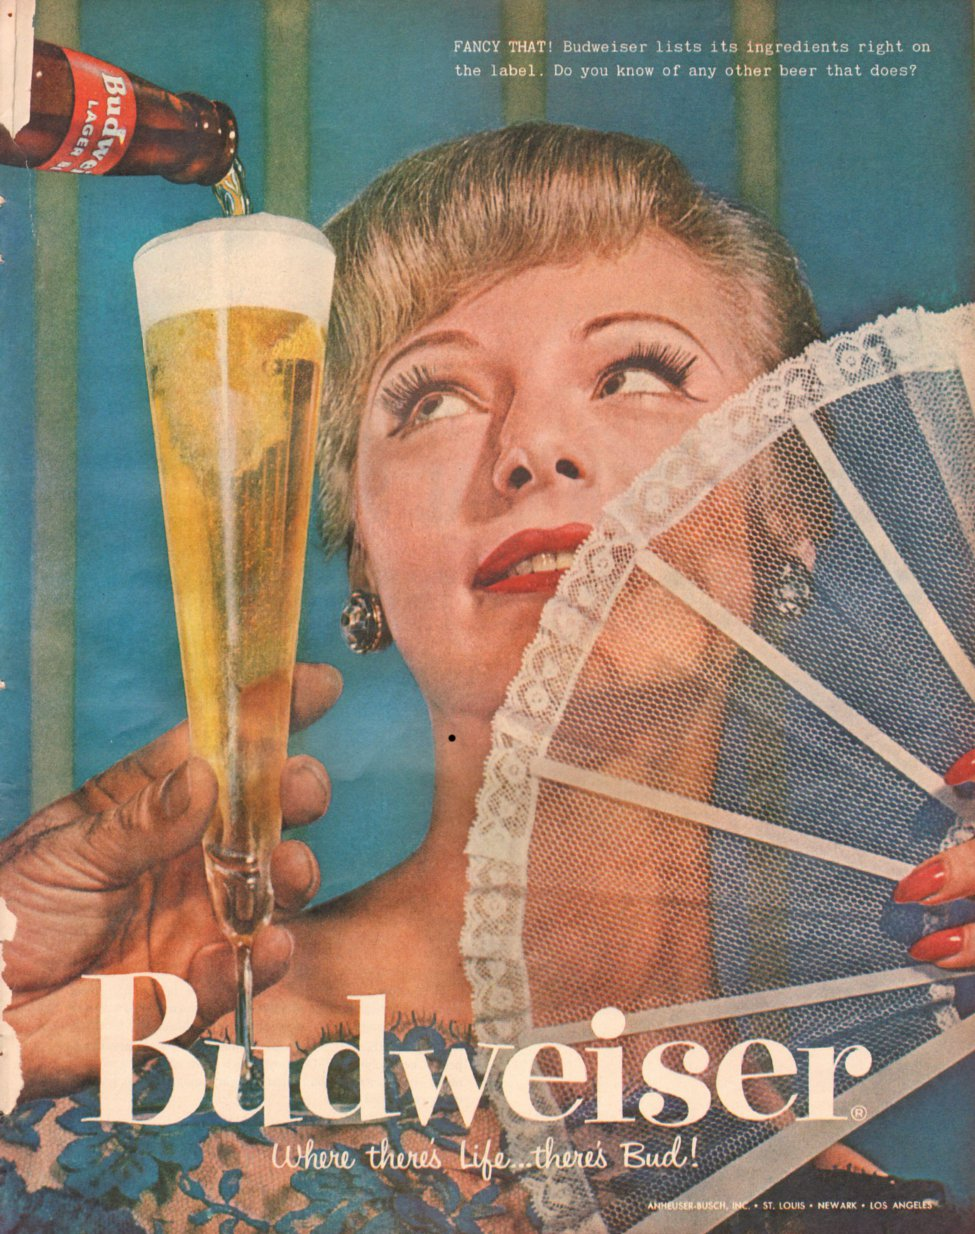 BUDWEISER BEER LOOK 10/29/1957 p. 97